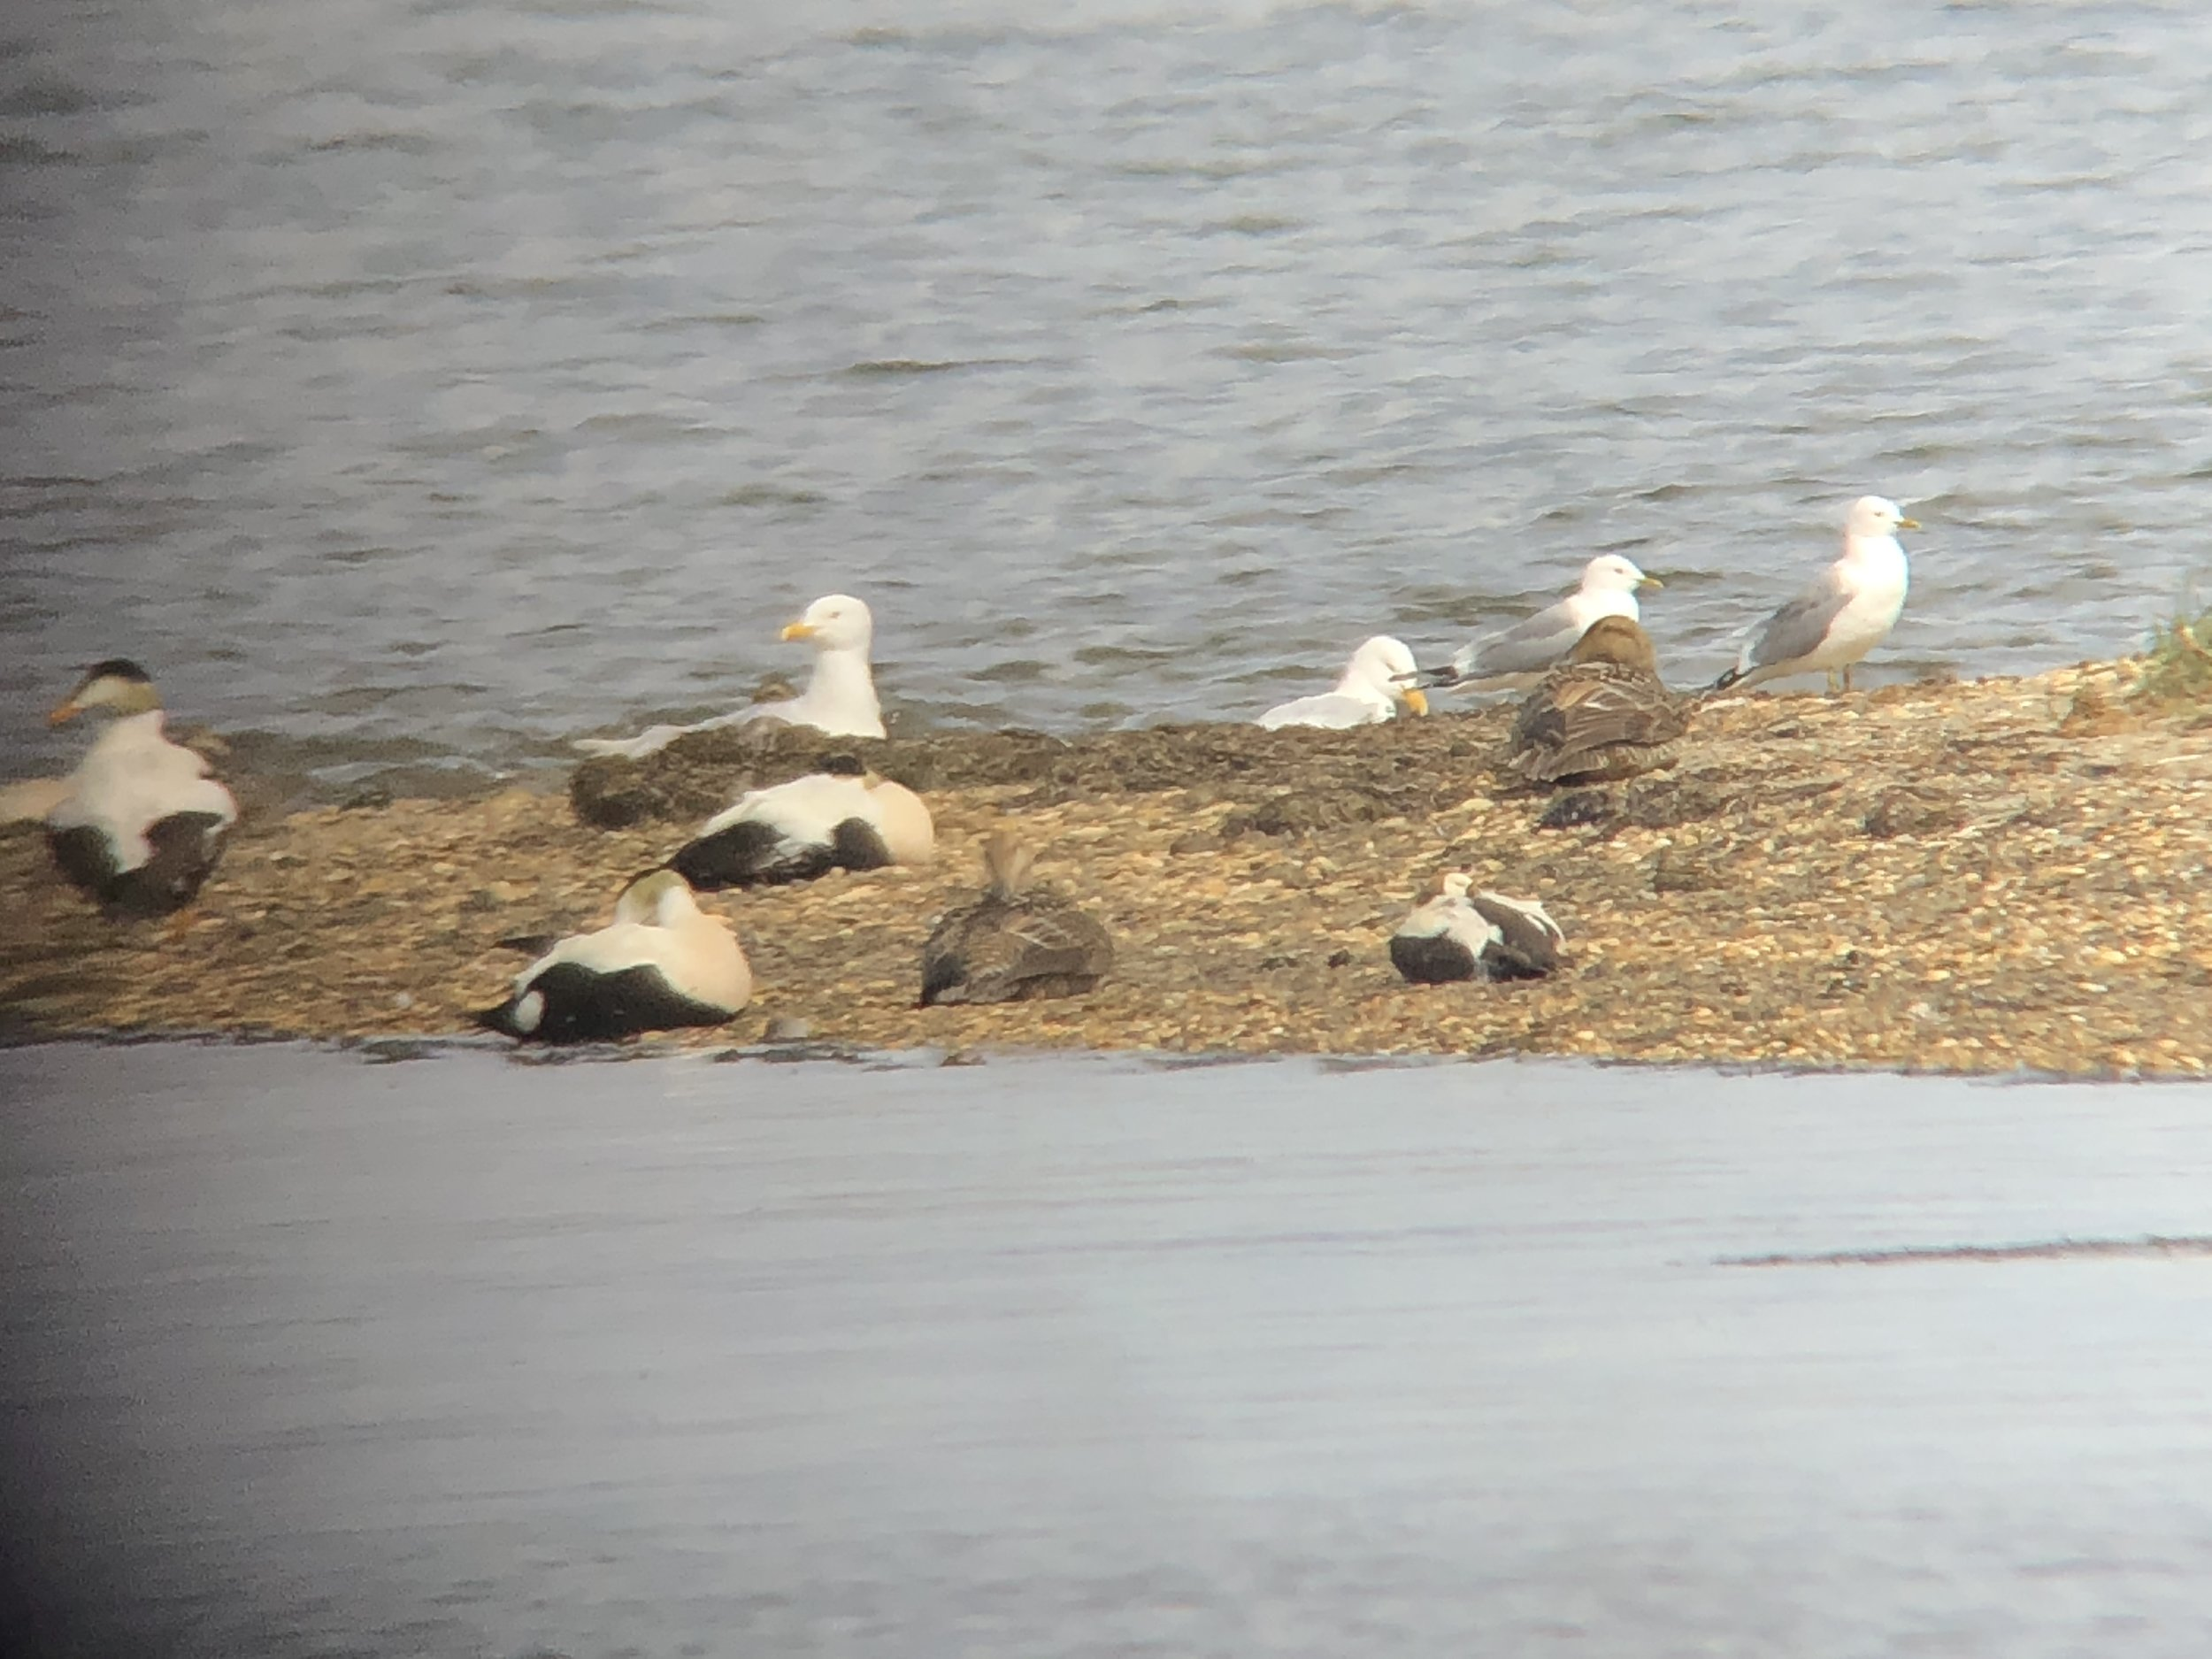 A Digiscoped image from quite the distance. The Spectacled Eider male is the bottom right bird.